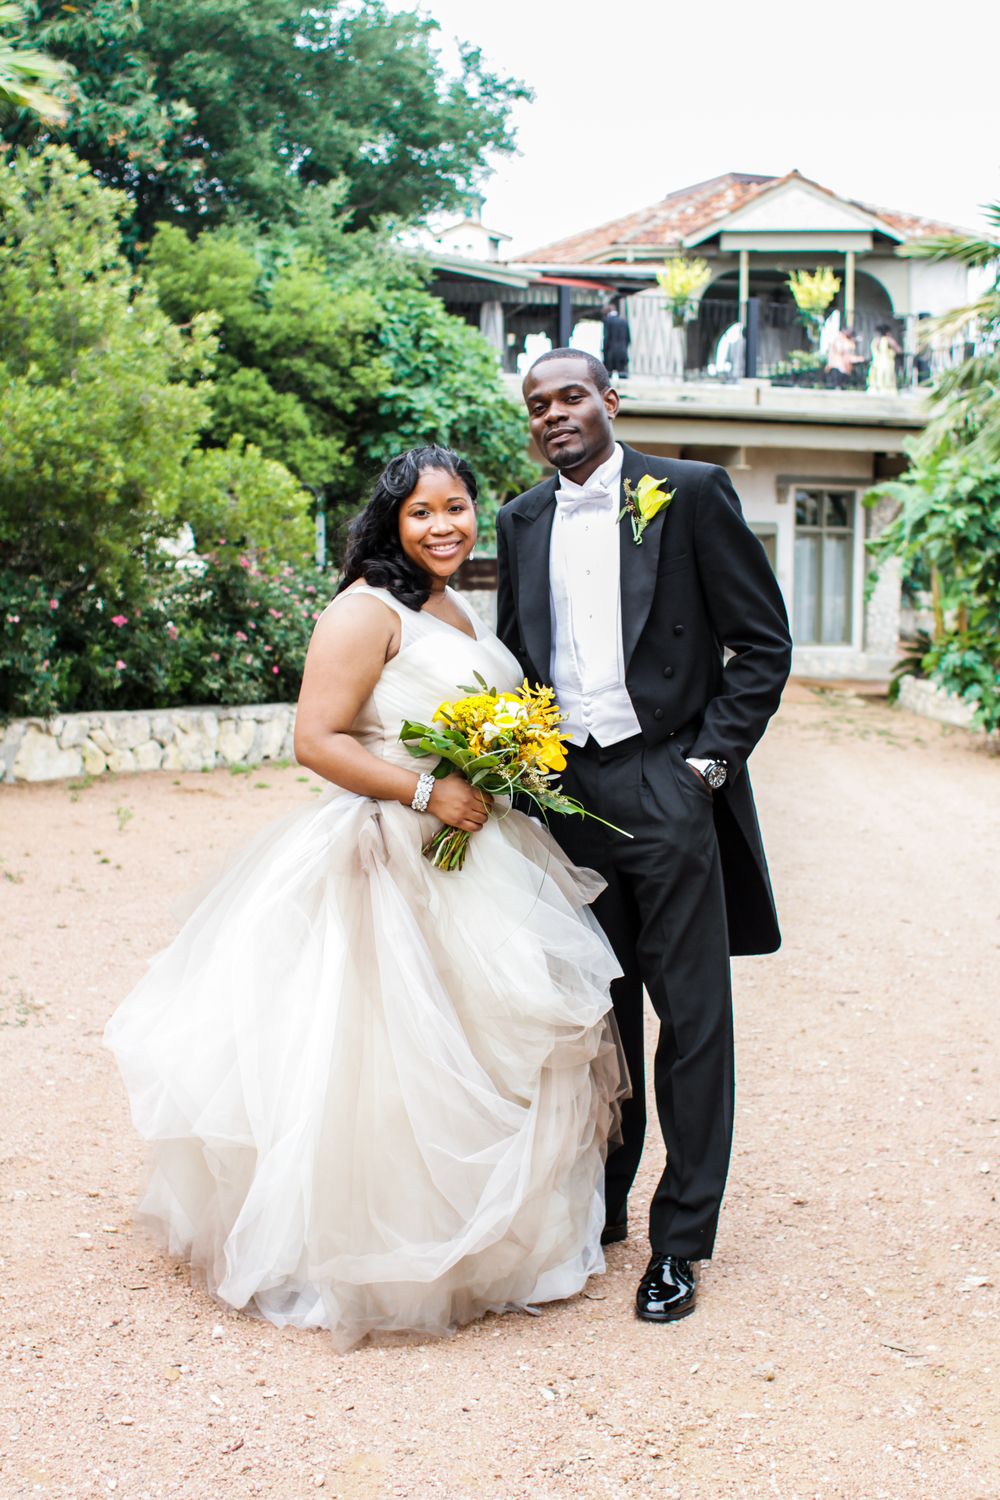 Melements_Maisha_&_Kingsley_Anenye_Wedding_Villa_Antonia_2013-229.jpg